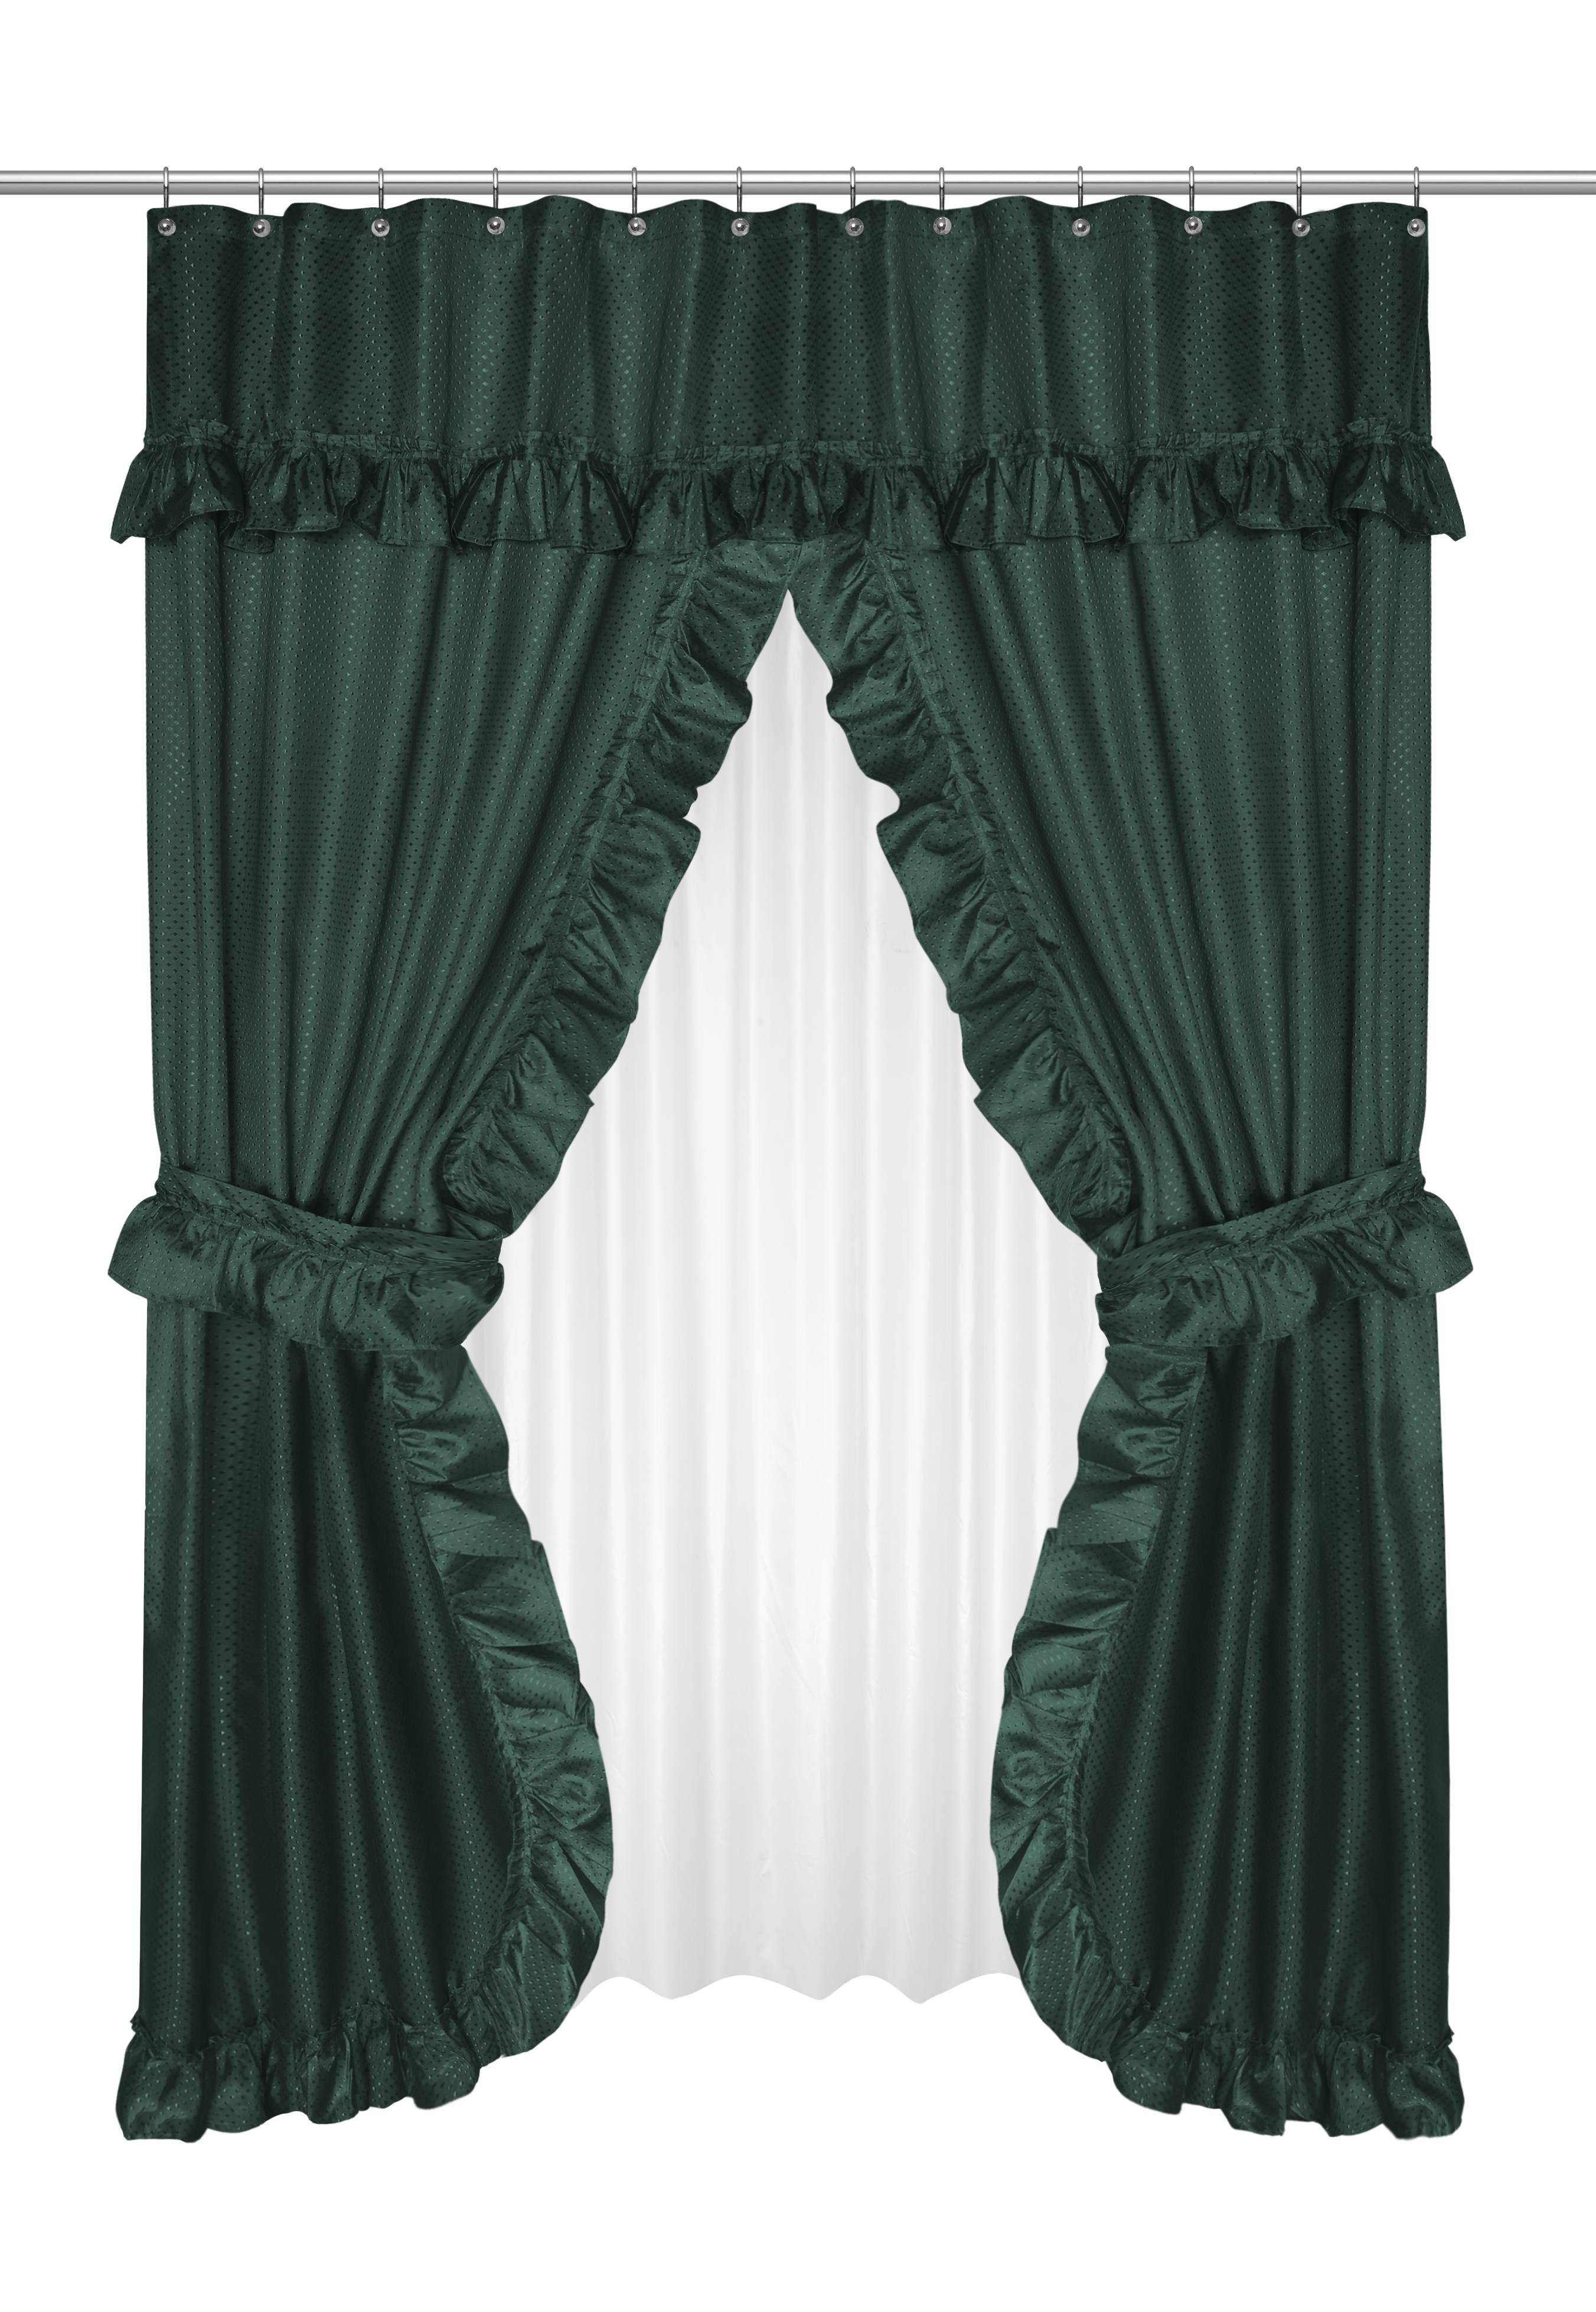 Magnificient Options for Curtains Decor Magnificent Collections Swag Shower Curtains